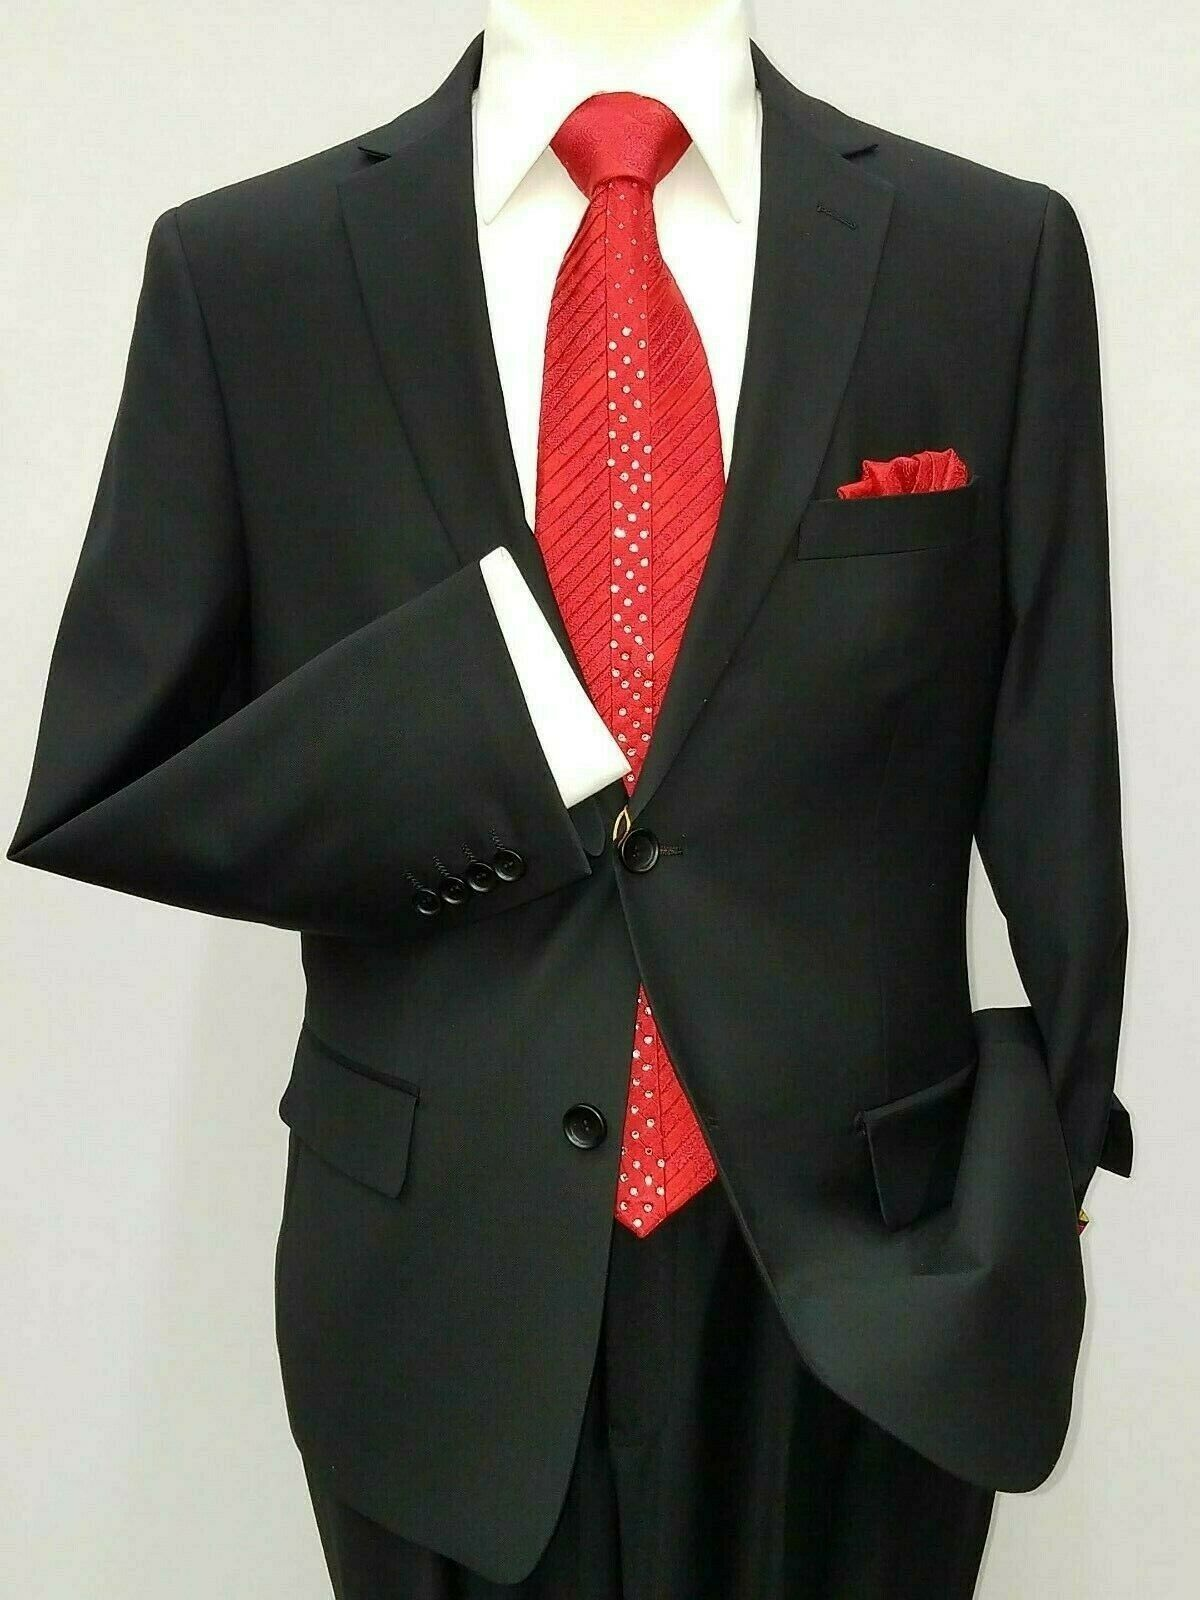 Primary image for Mens suit Mantoni 100% Wool Two Button Side Vents formal or Business 40901 black